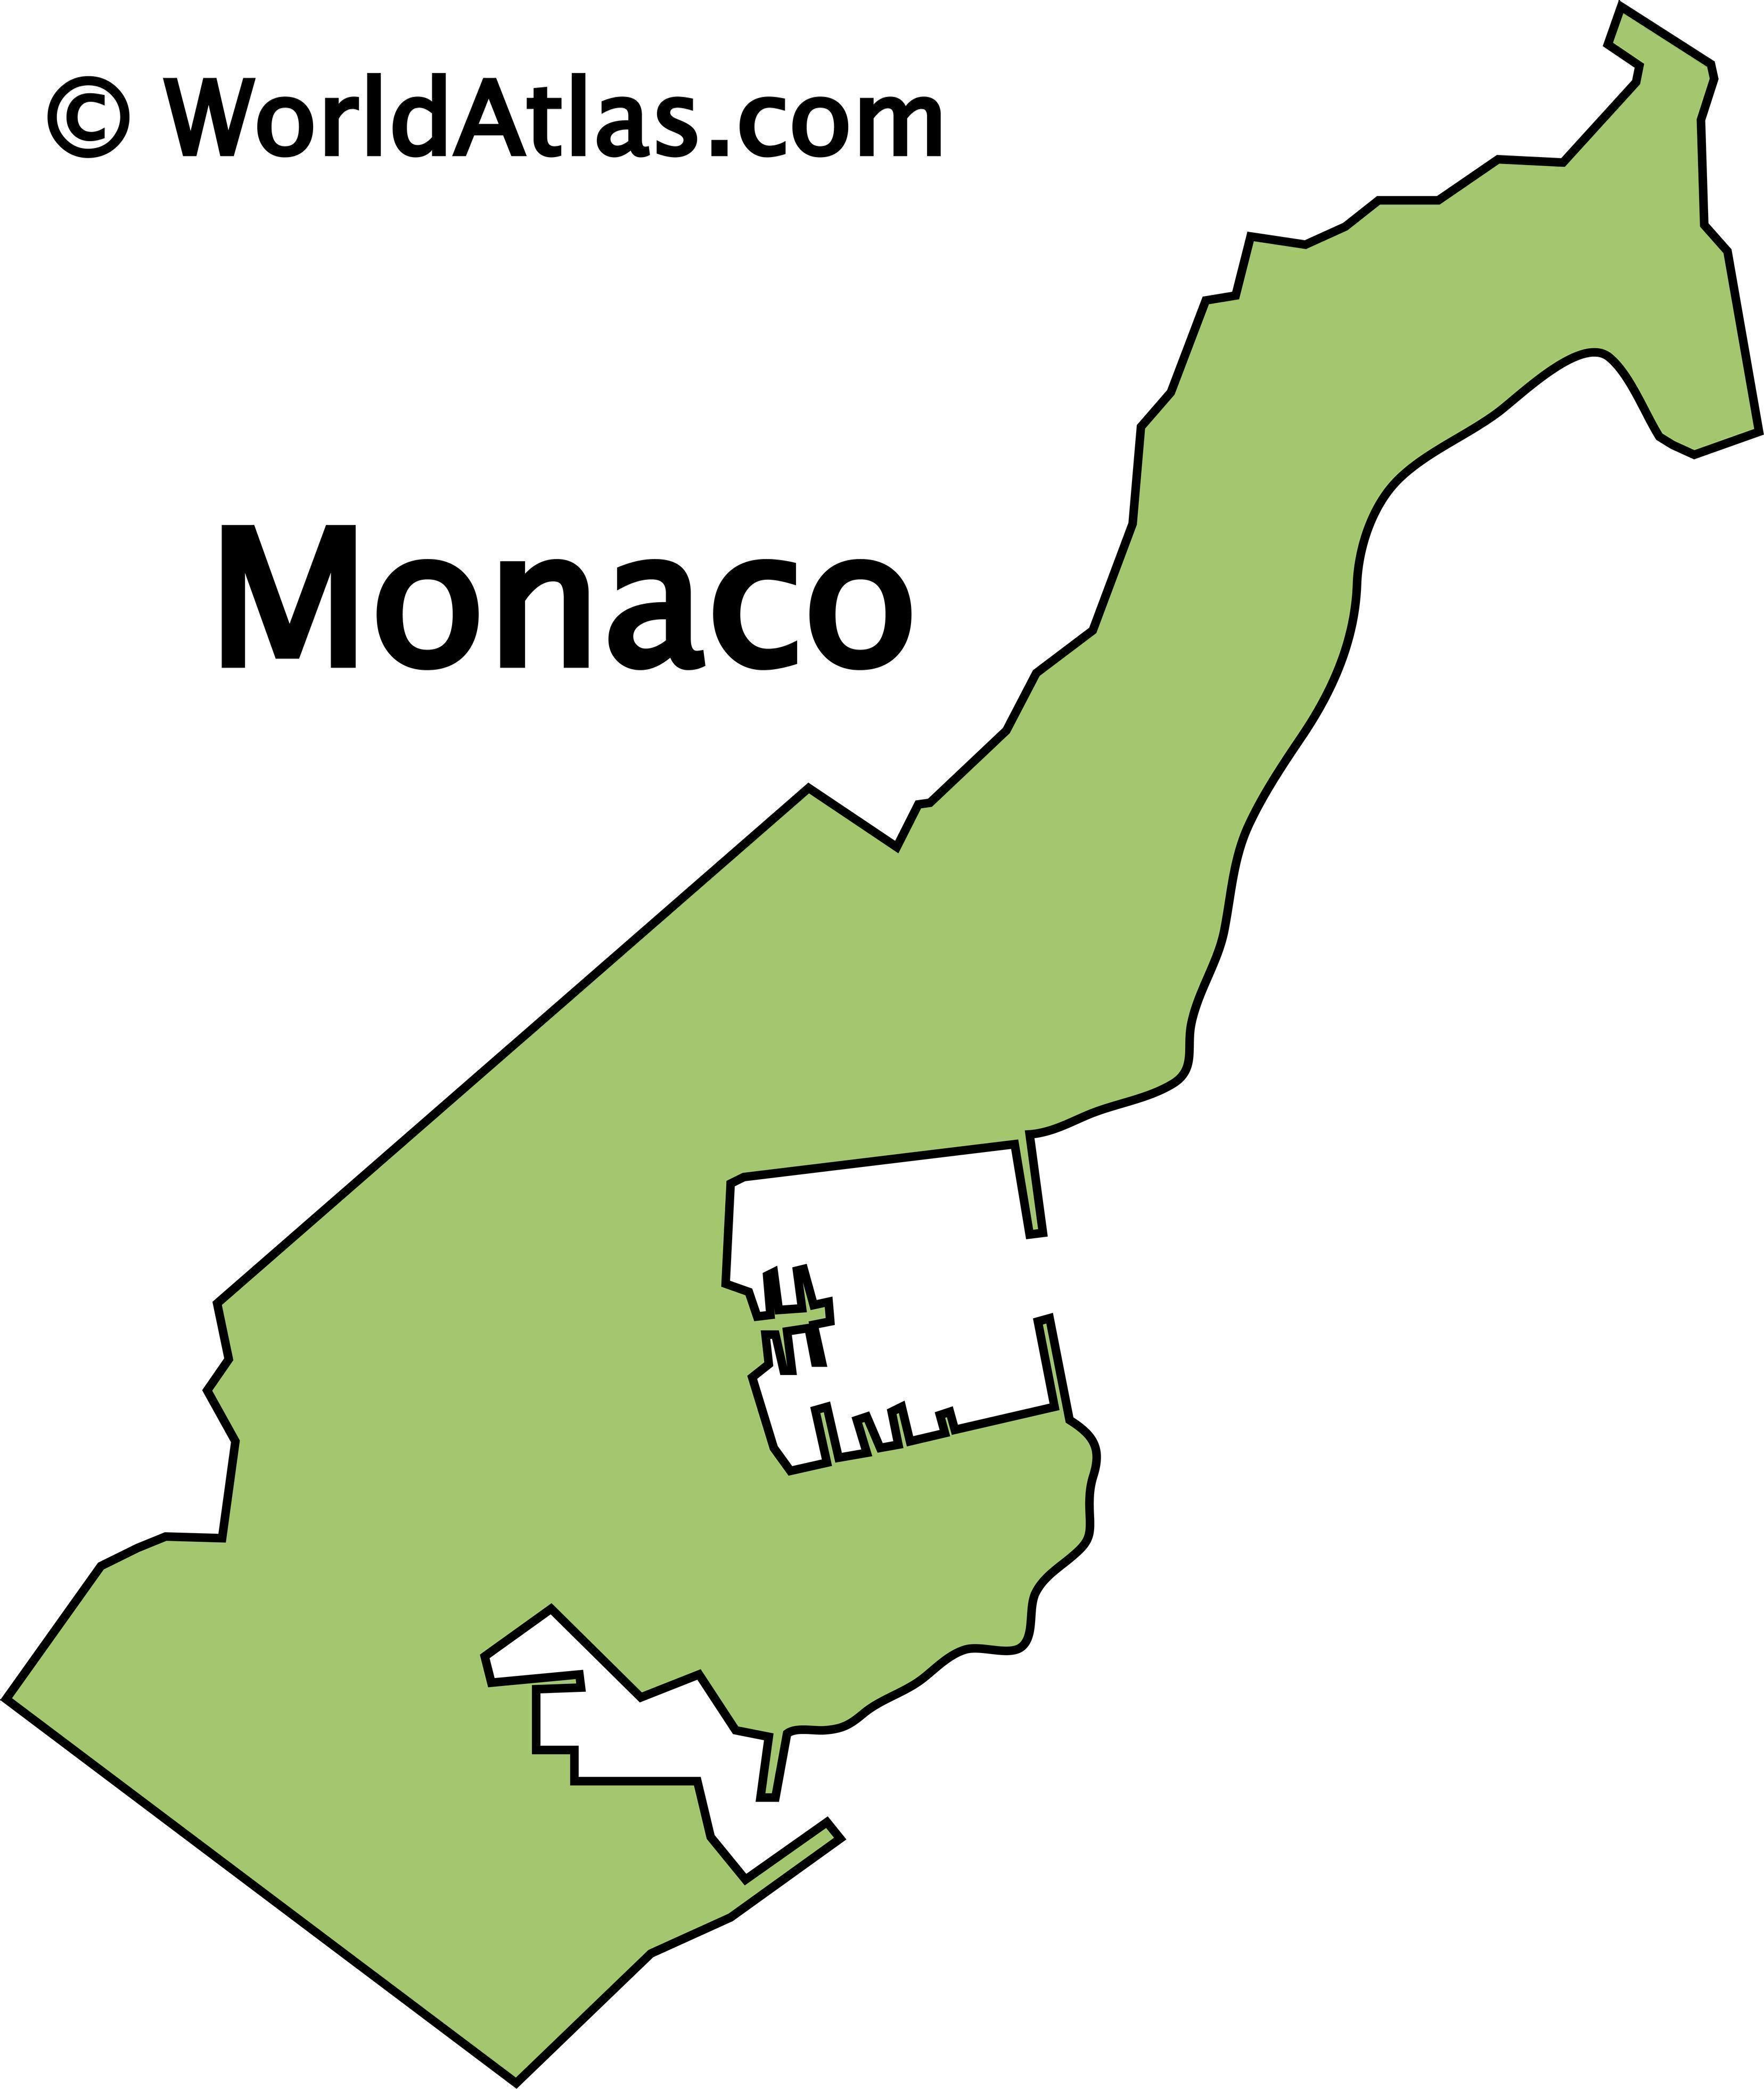 Outline Map of Monaco